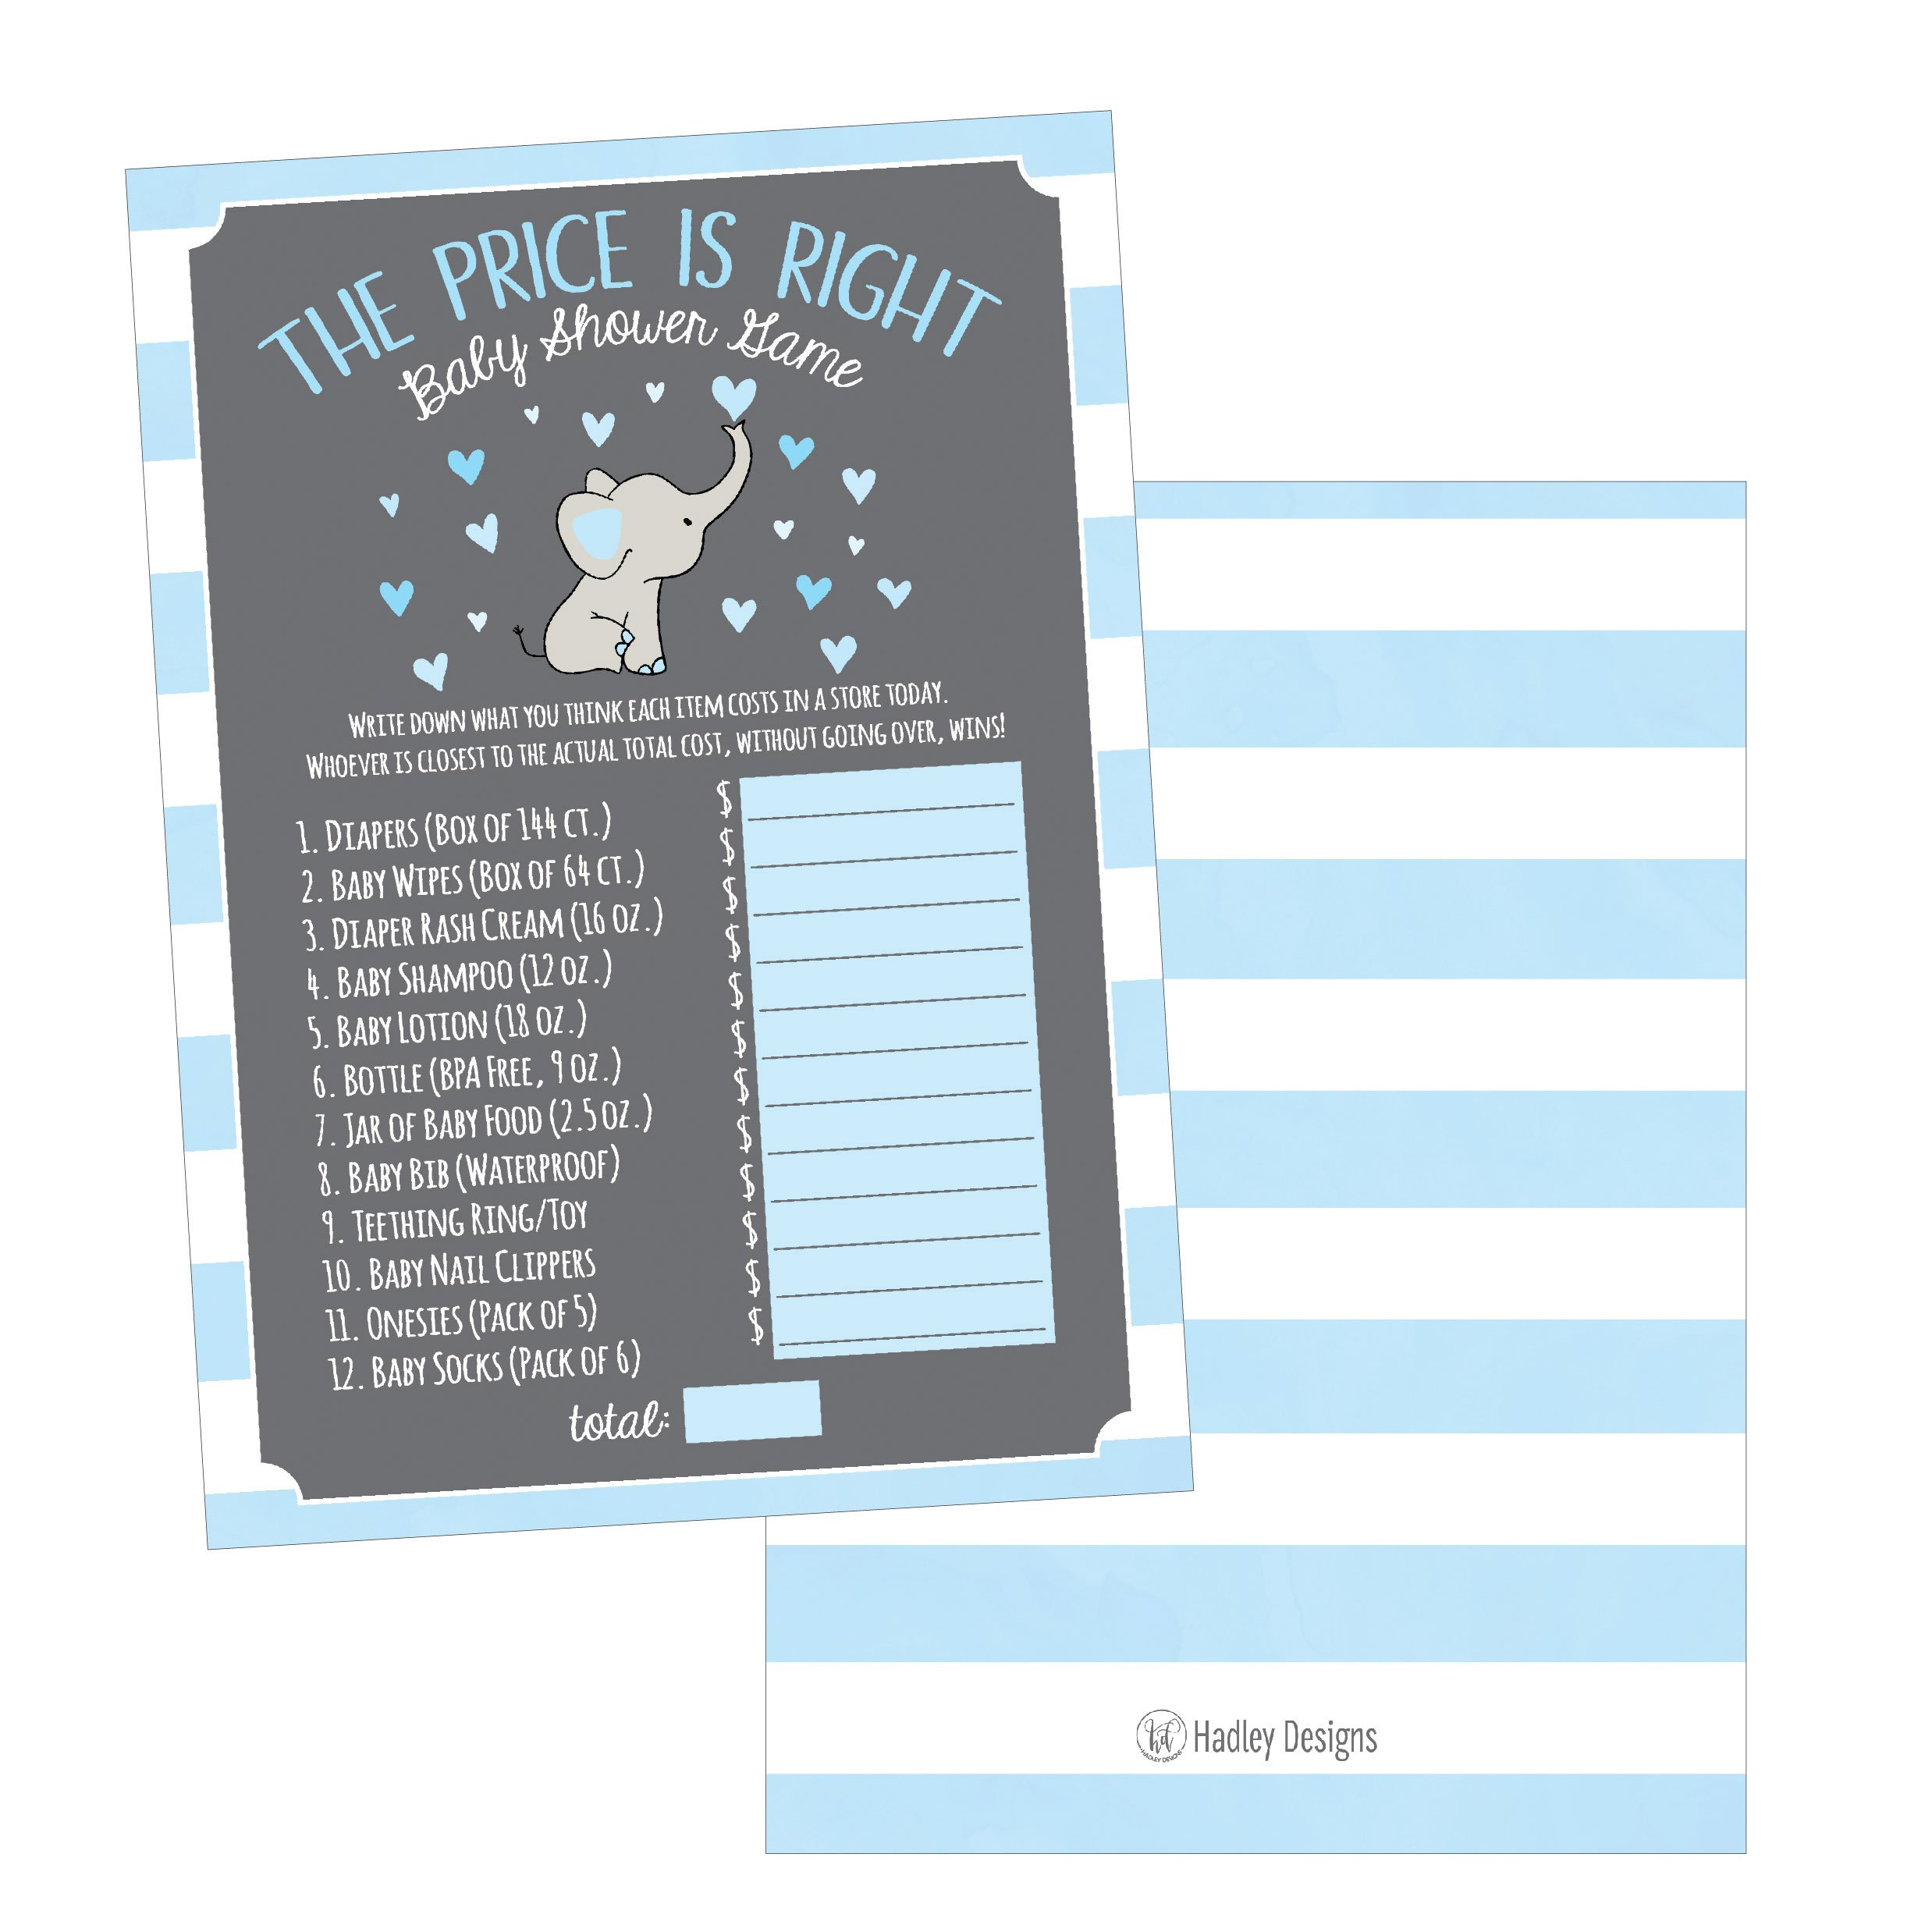 25 Blue Elephant Guess If The Price Is Right Baby Shower Game Ideas For Boys Girls Fun Party Activities Card Gender Neutral Reveal Guessing Funny Questions Bundle Pack For Couples Decorations Supplies